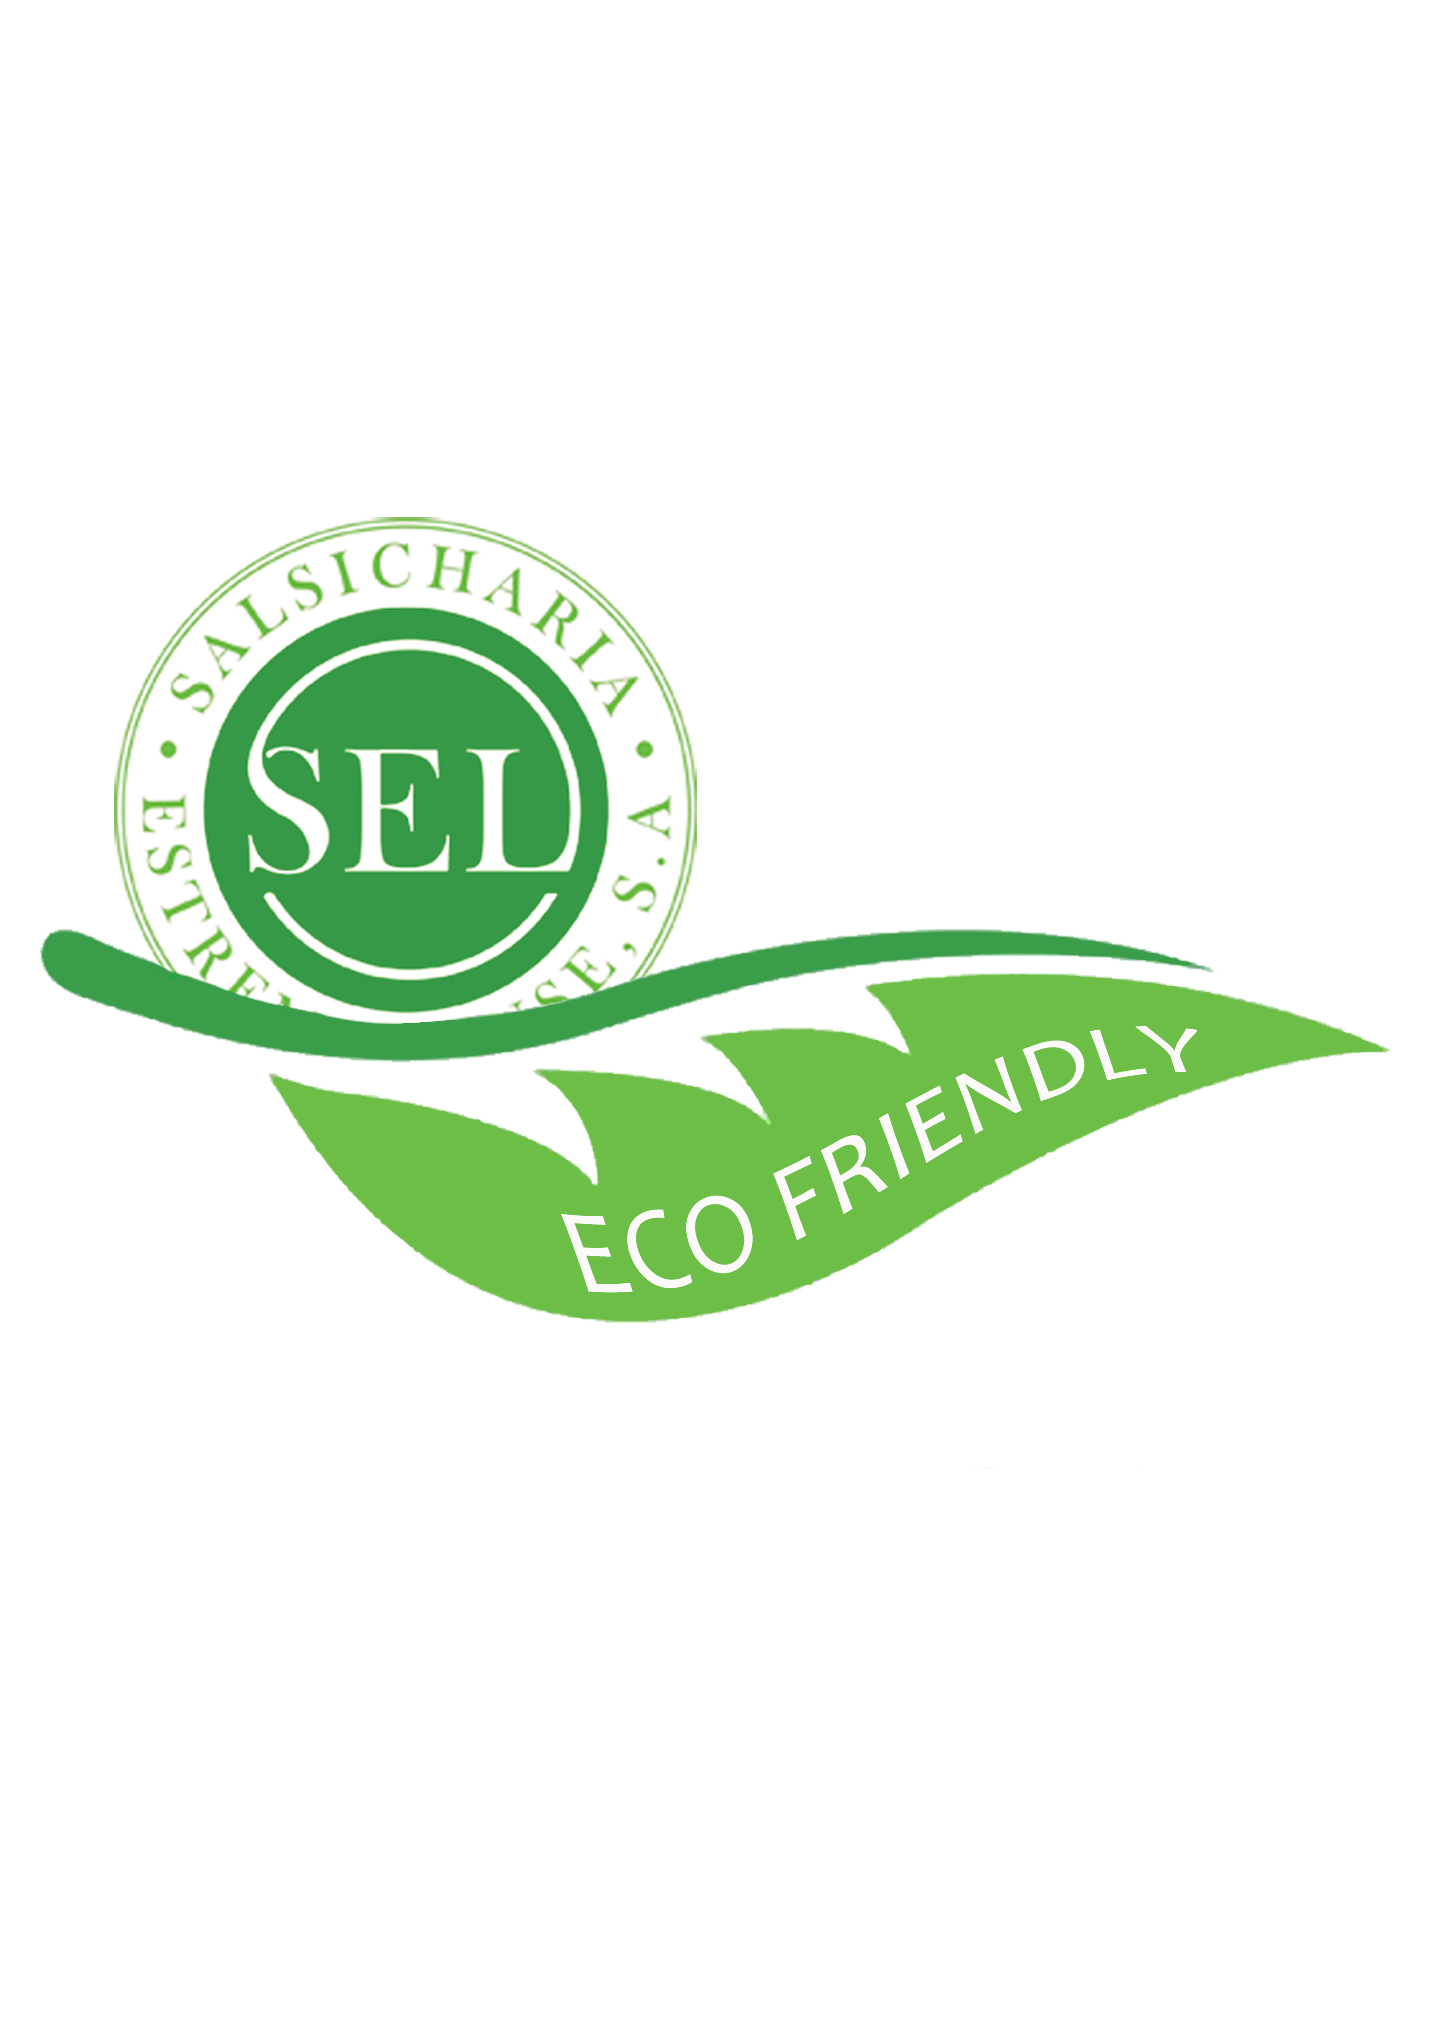 SEL -  ECO FRIENDLY